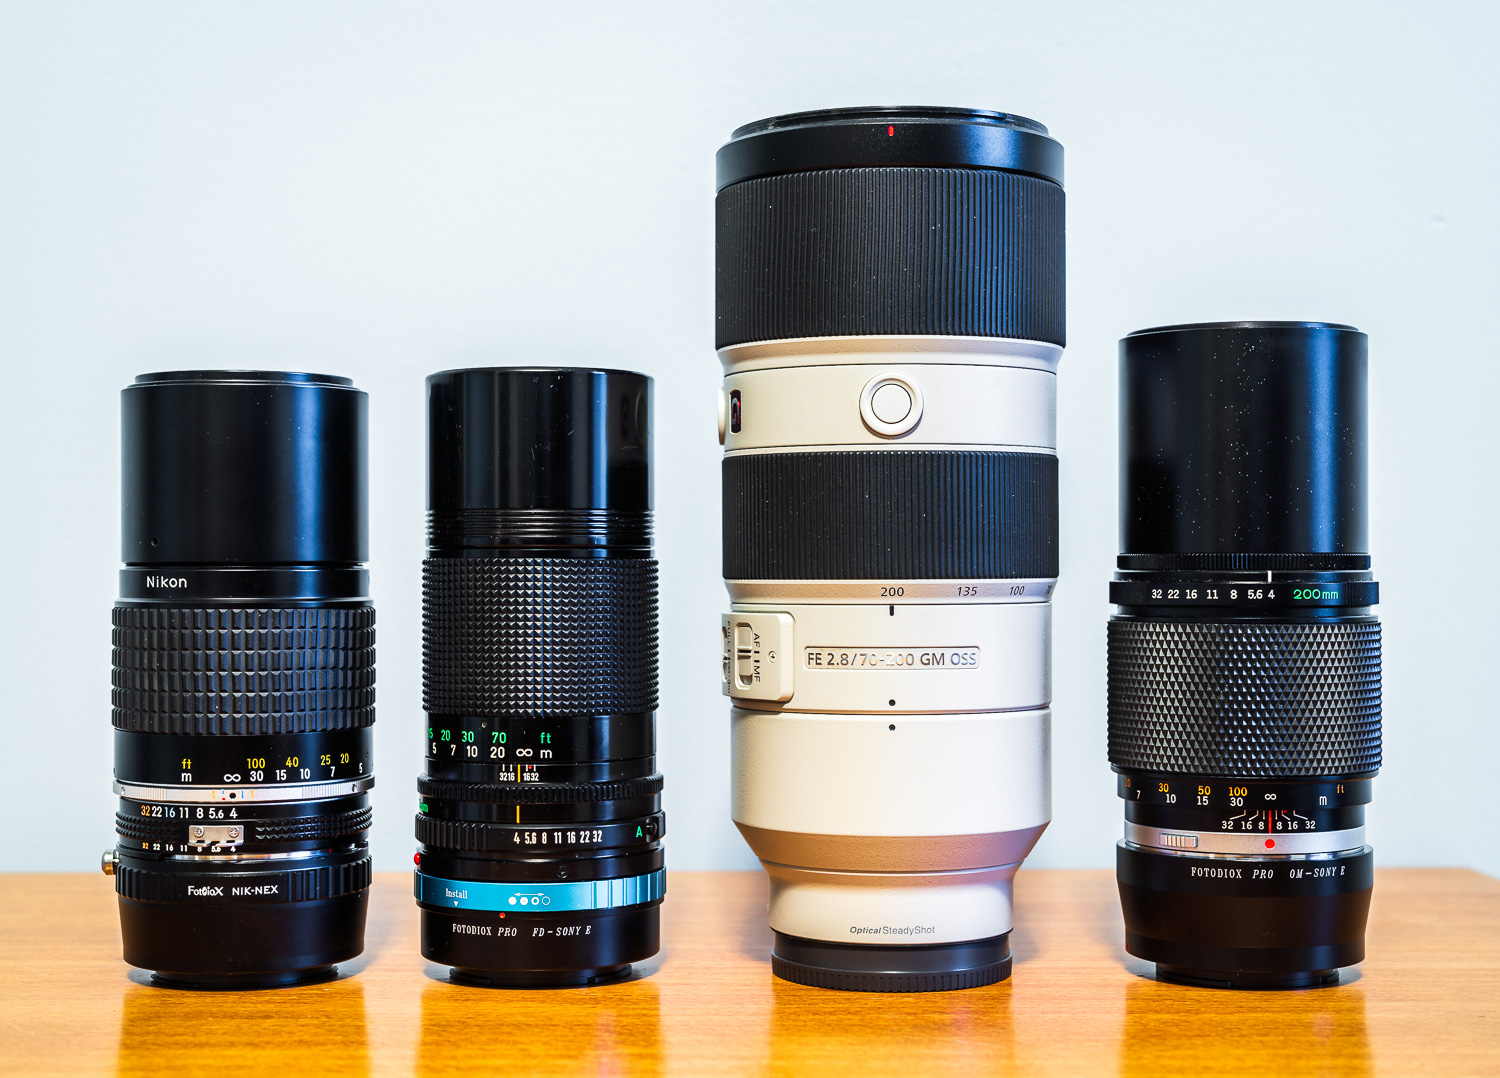 From left to right: Nikon Ai-s Nikkor 200mm f/4 (1.38 lbs), Canon new FD 200mm f/4 (1.20 lbs), Sony 70-200 f/2.8 GM (3.26 lbs), and Olympus OM Zuiko MC Auto-T 200mm f/4 (1.35 lbs)